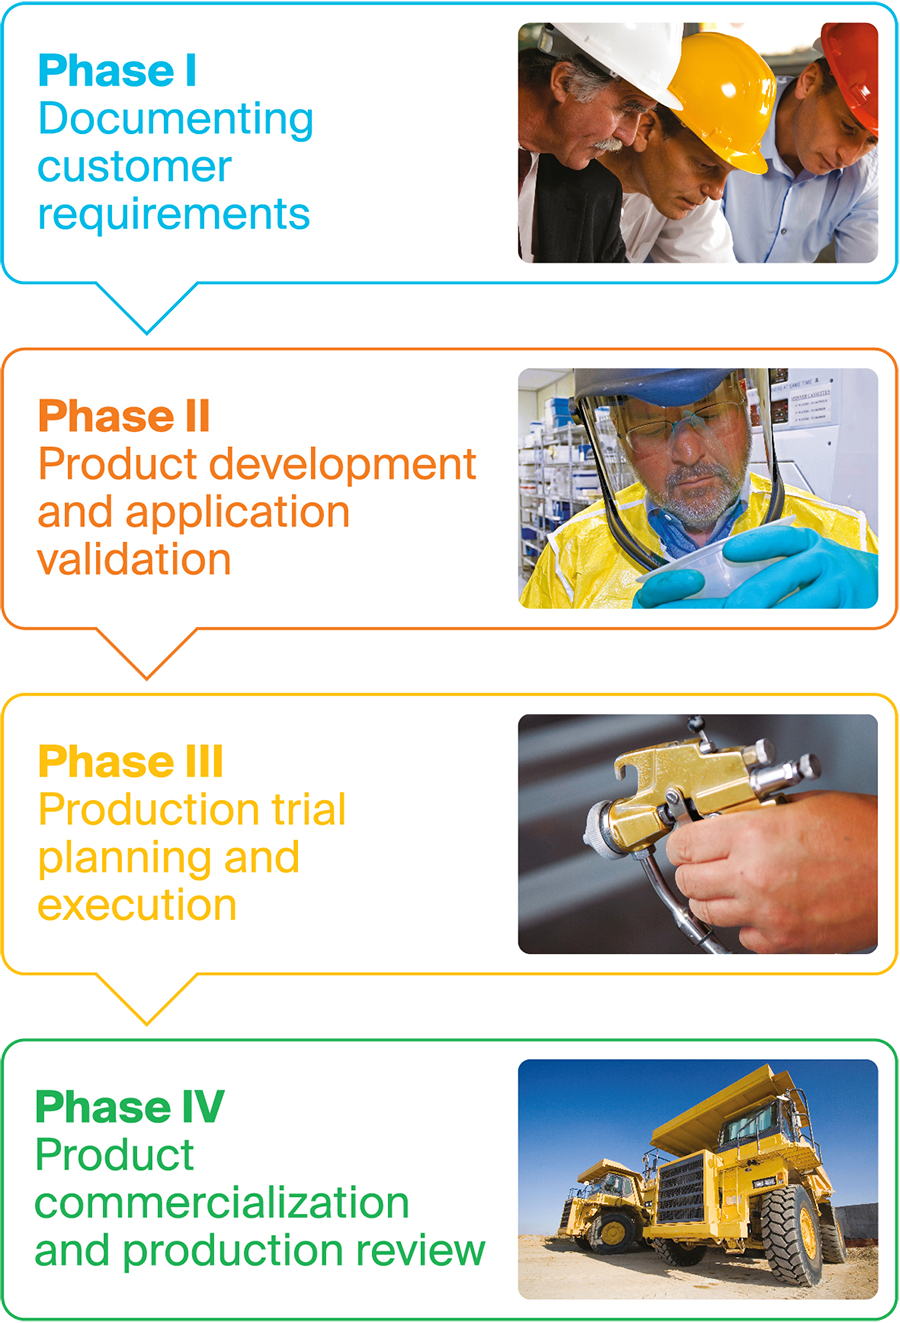 The 4 phases of Secure Launch Excellence include documenting customer requirements to development and commercialization.